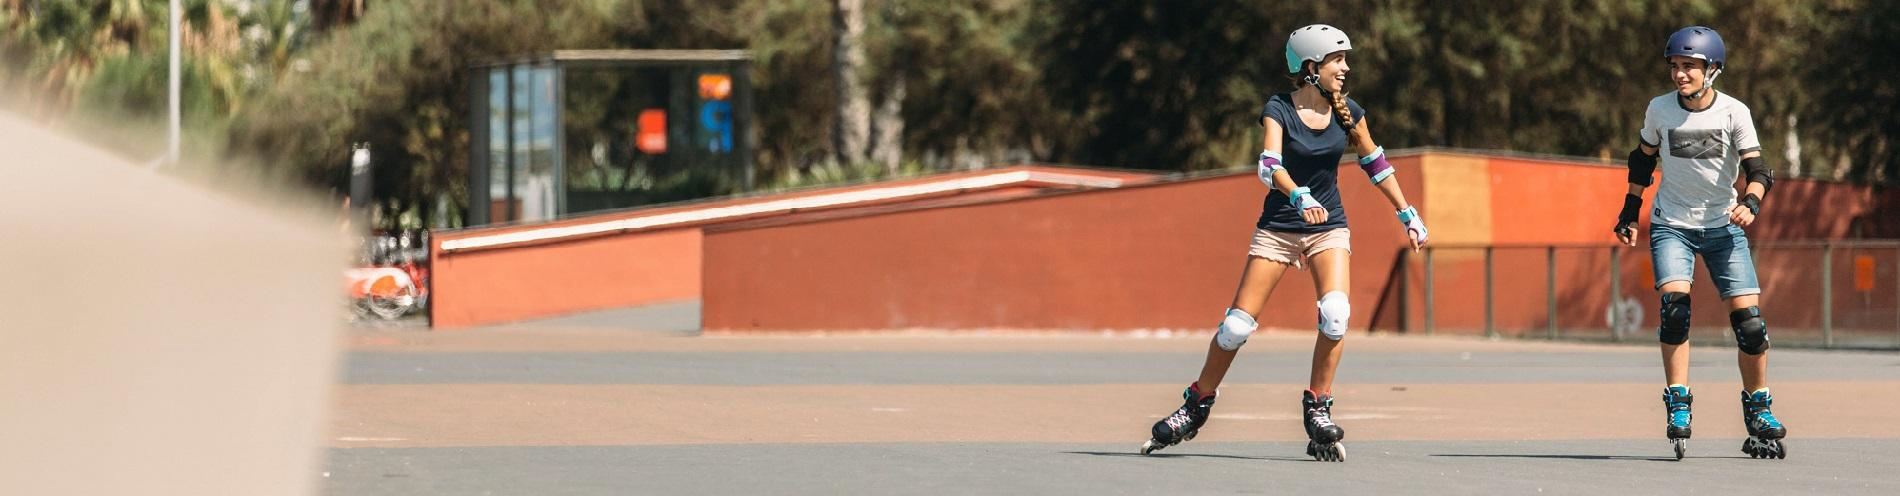 The Top 10 Benefits of Fitness Skating